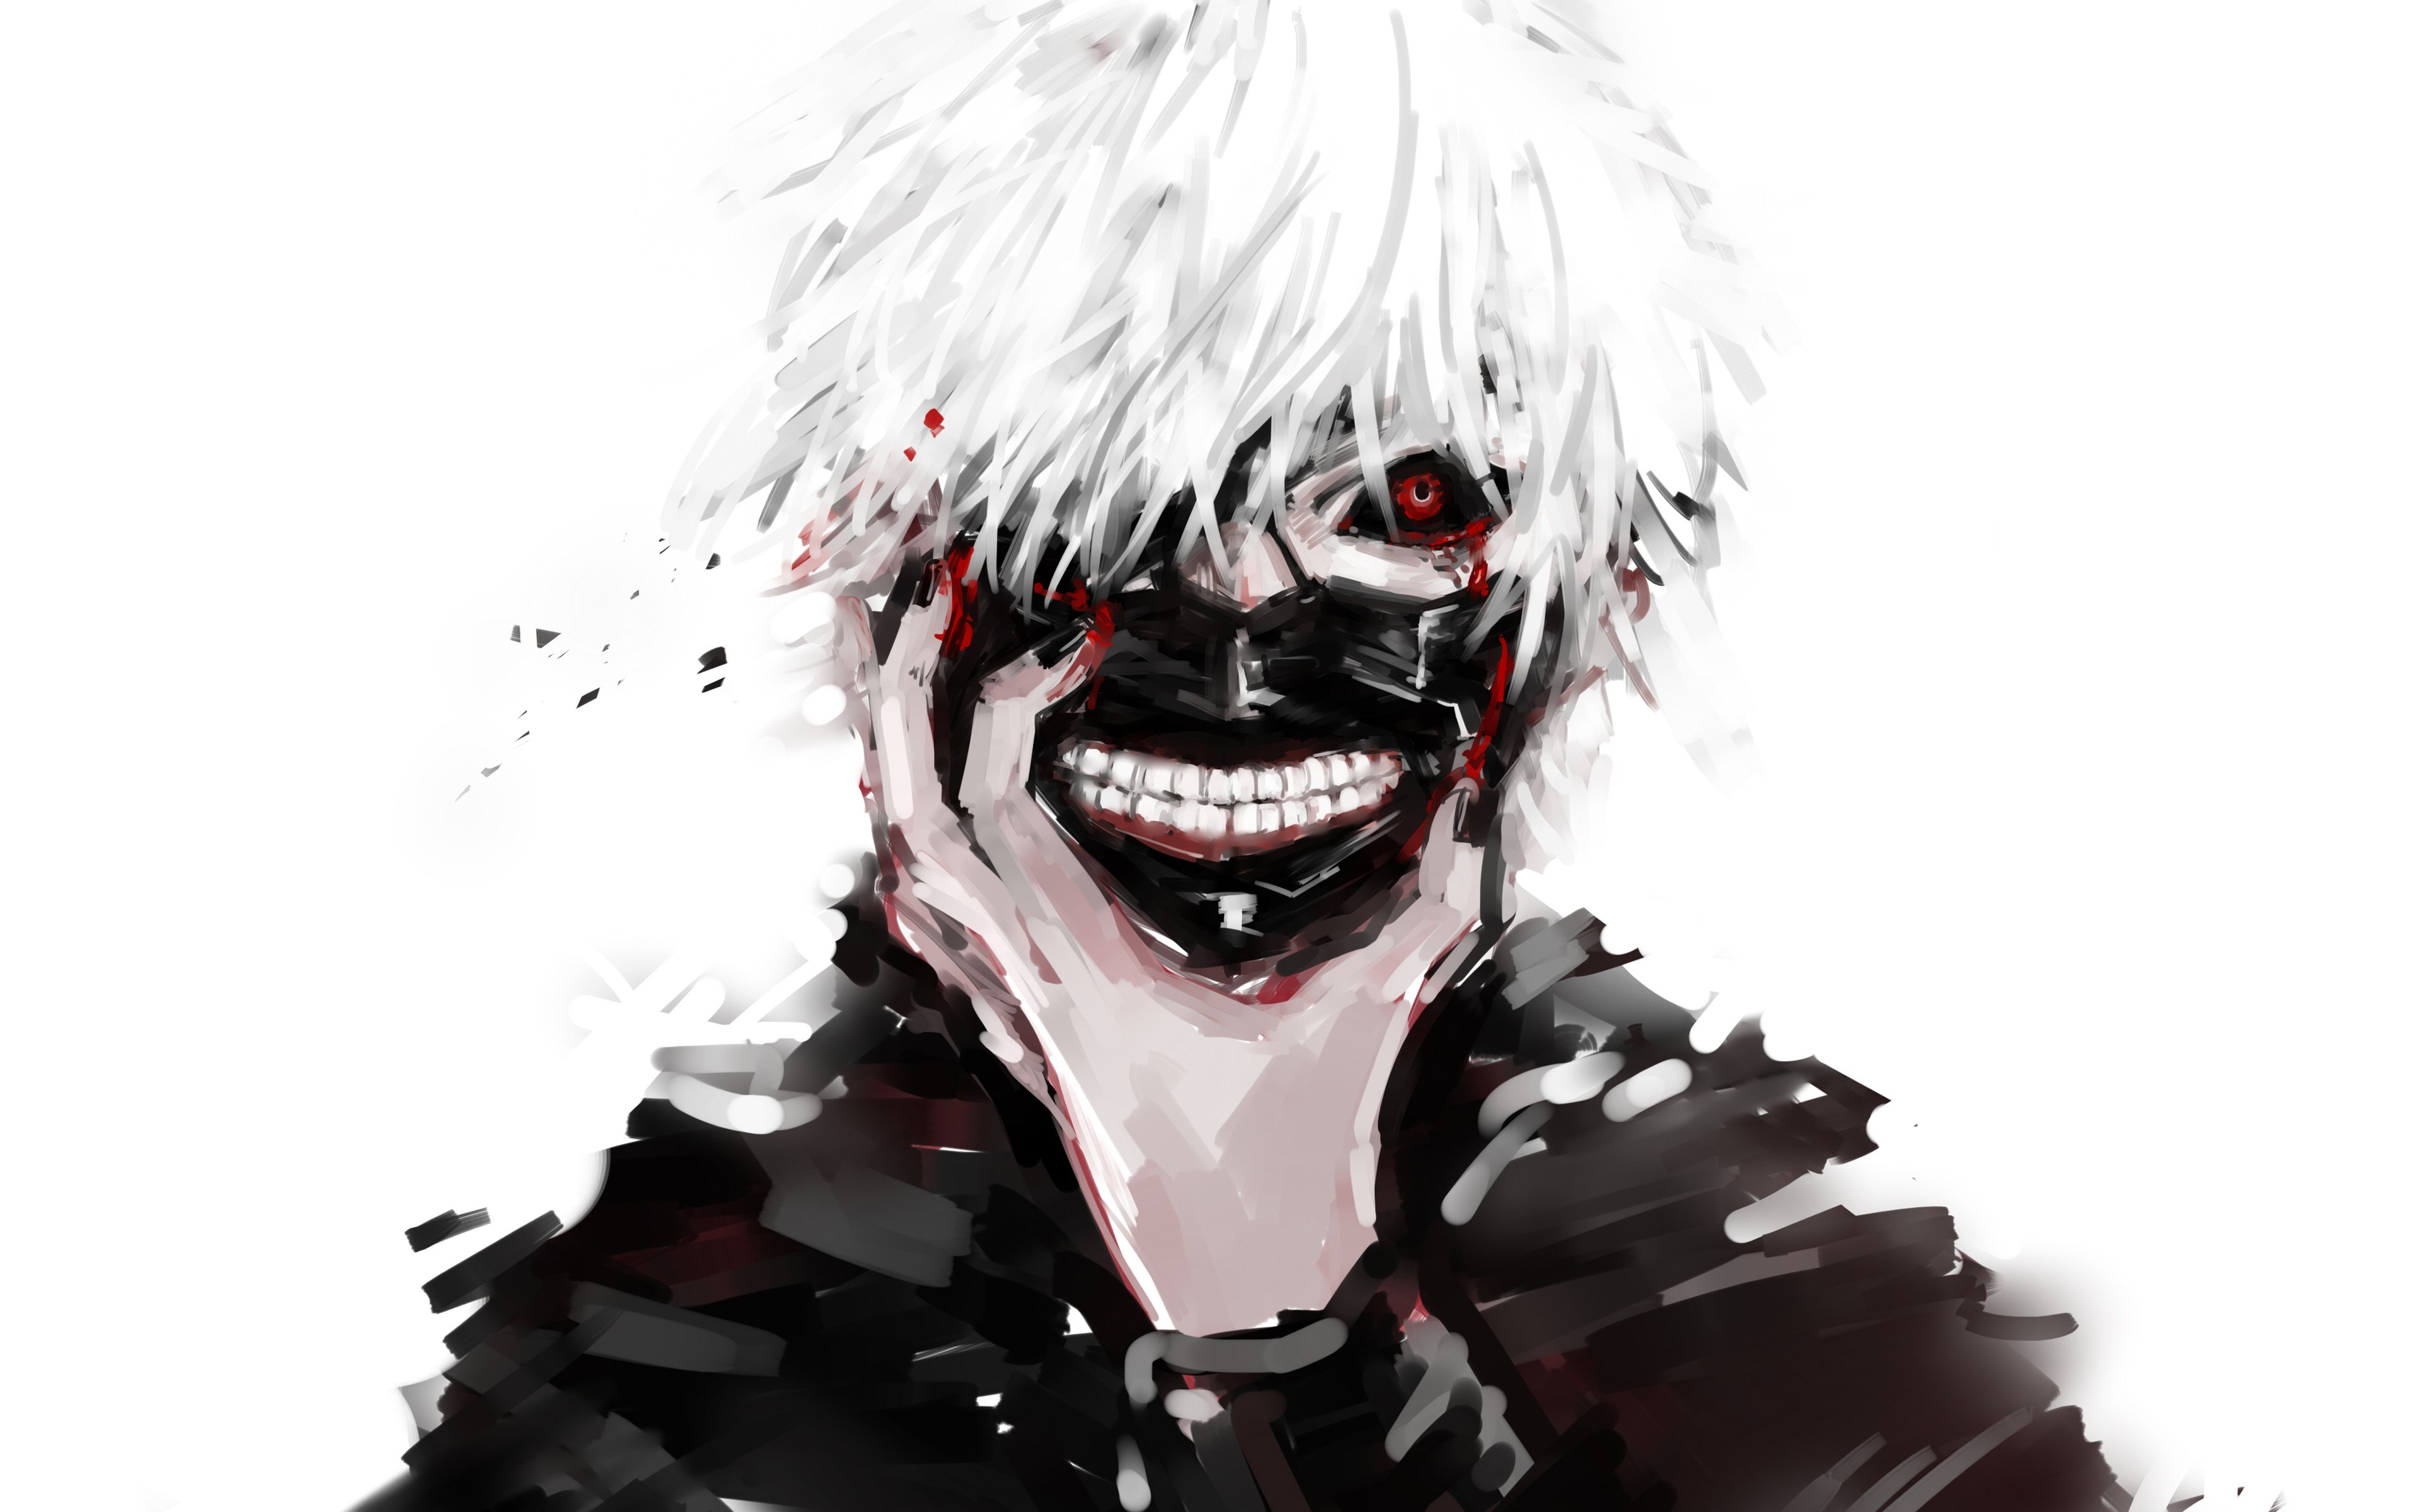 Simple Wallpaper High Quality Tokyo Ghoul - 146251-tokyo-ghoul-4k-ultra-hd-wallpaper  Best Photo Reference_274025.jpg